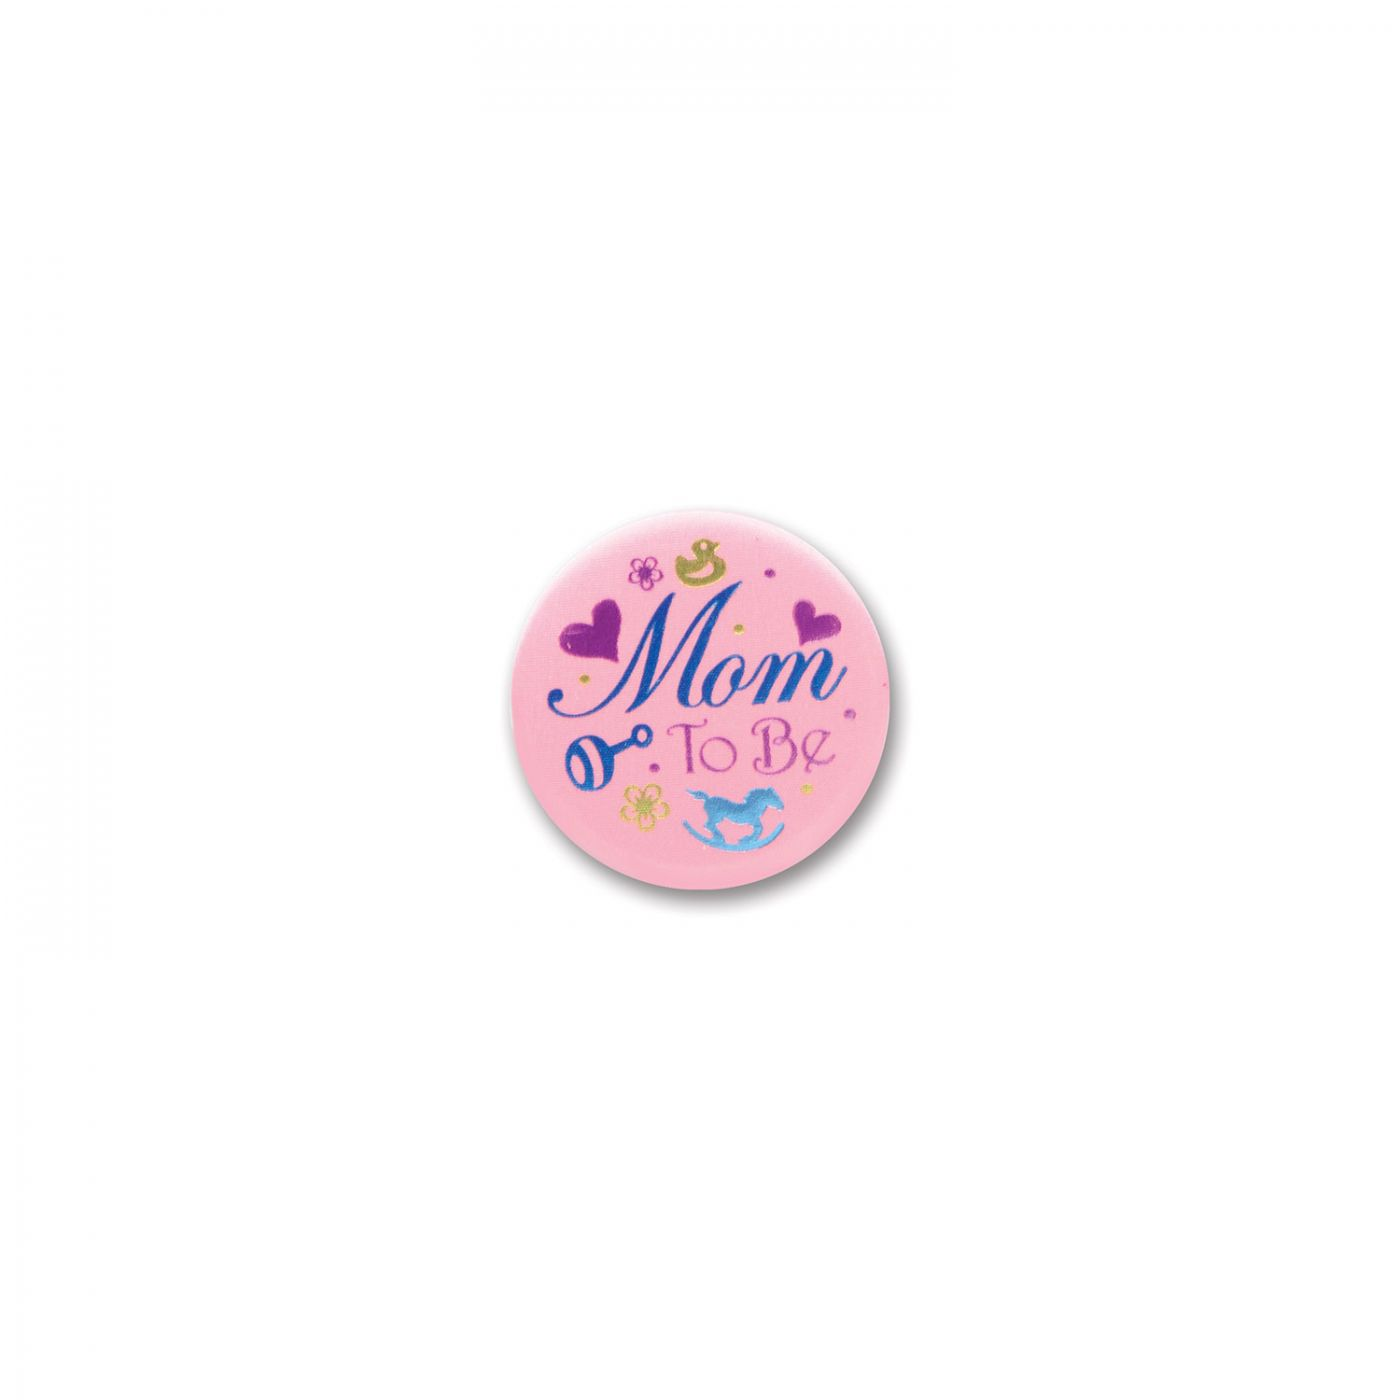 Mom To Be Satin Button (6) image